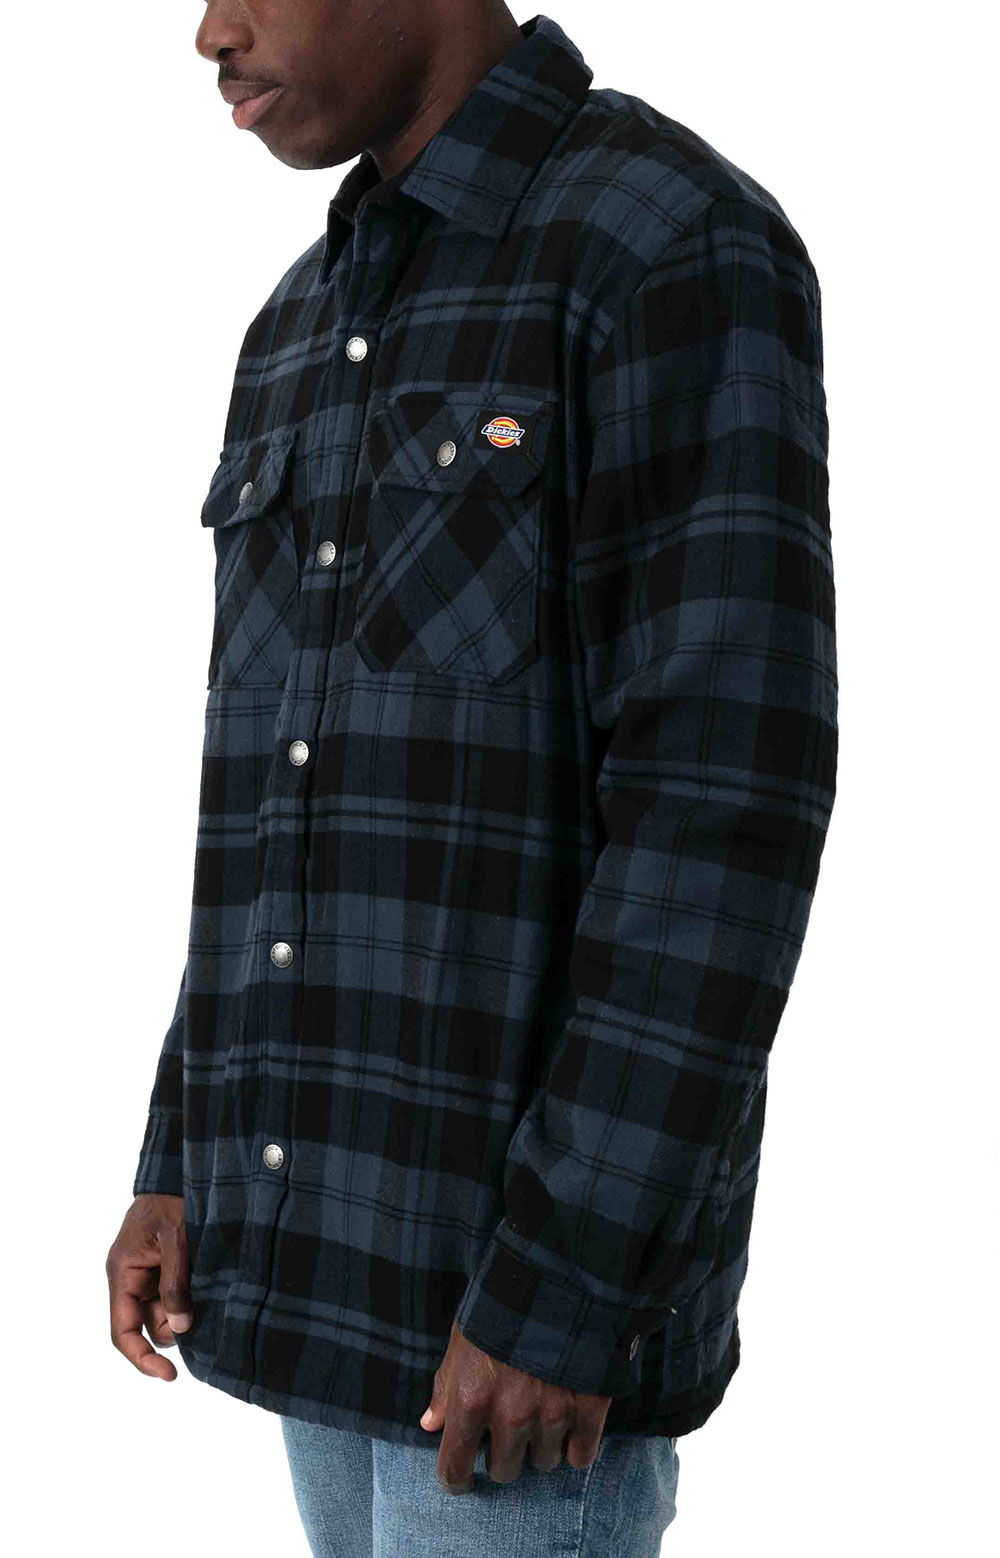 (TJ210OP1) Sherpa Lined Flannel Shirt Jacket with Hydroshield - Ink Navy Plaid  4